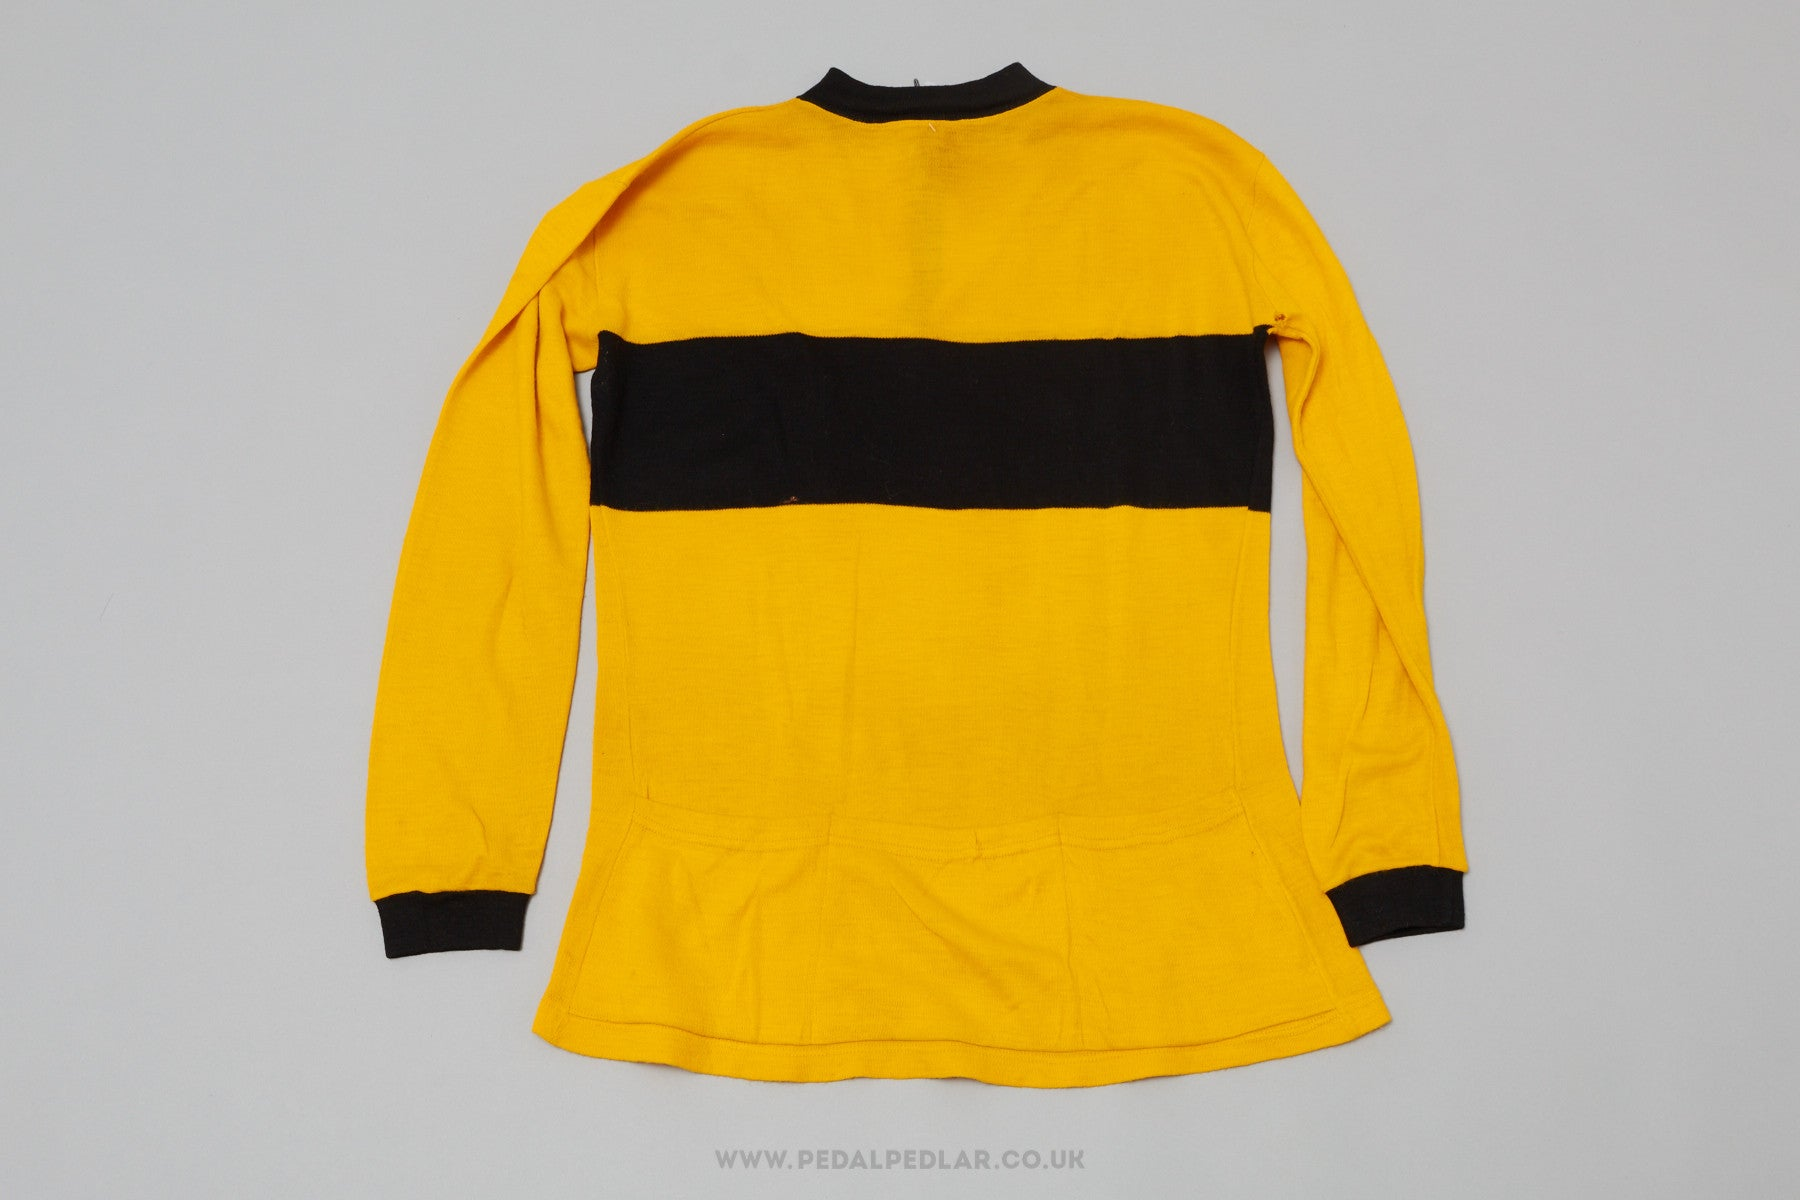 Black   Yellow Unbranded Vintage Woollen Style Cycling Jersey - Pedal Pedlar  - 2 9ad8efd2d